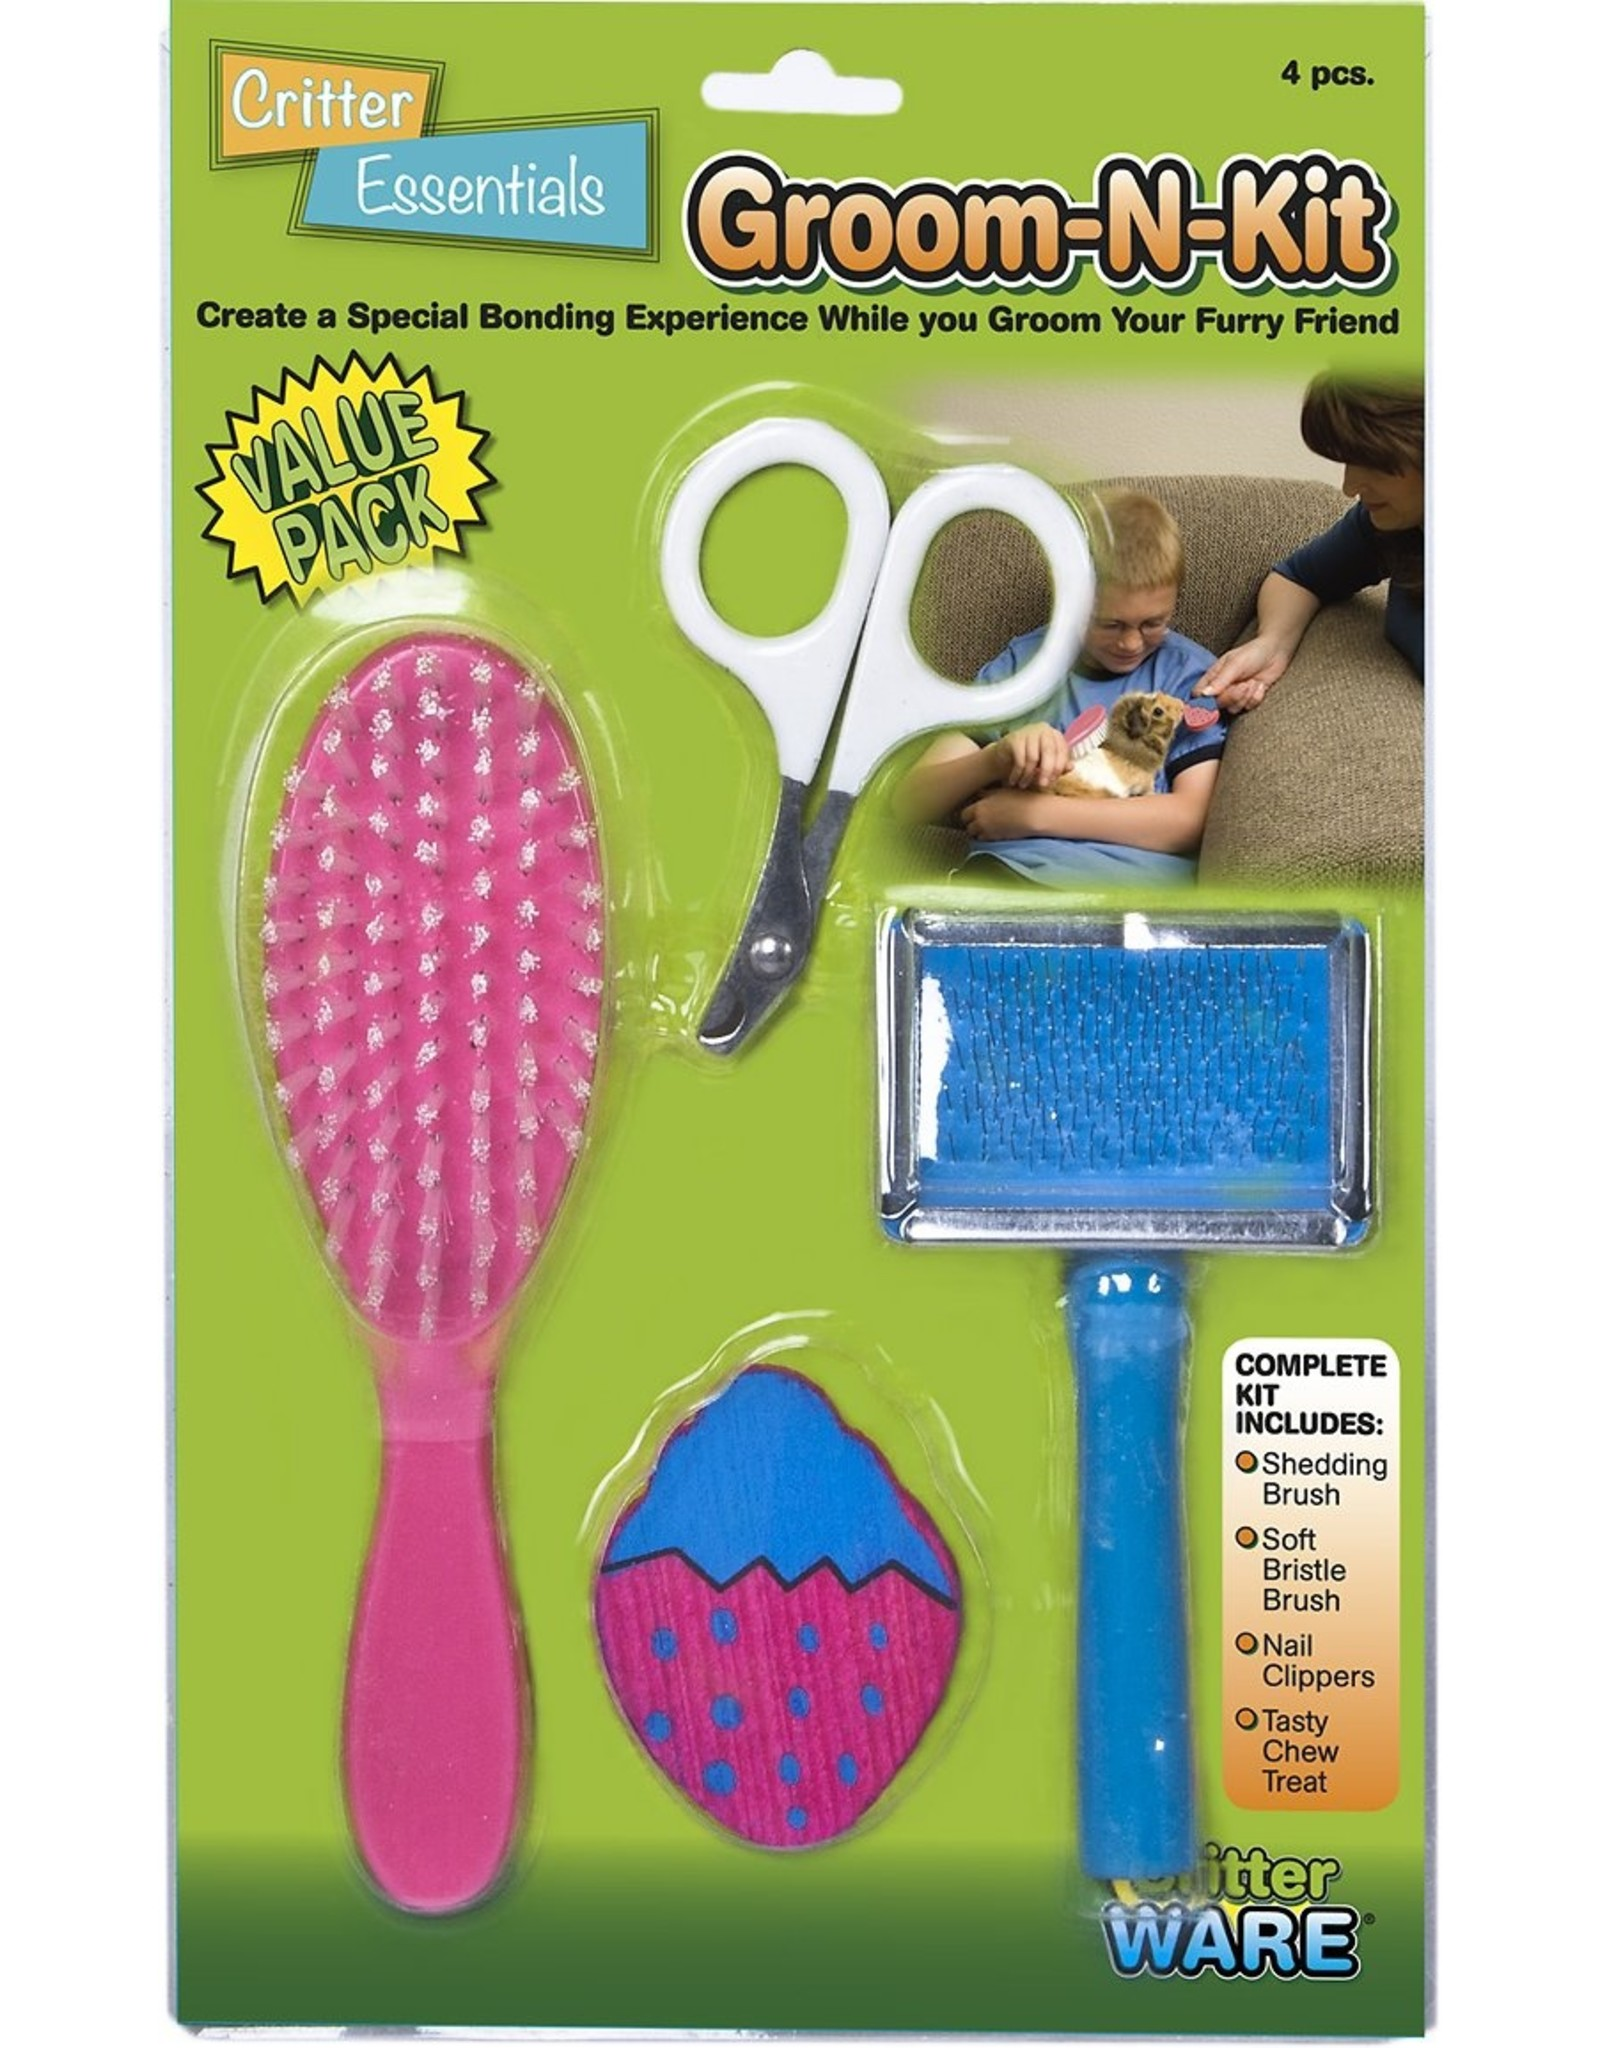 Ware Manufacturing WARE CRITTER ESSENTIALS 4-PIECE GROOM-N-KIT FOR SMALL ANIMALS